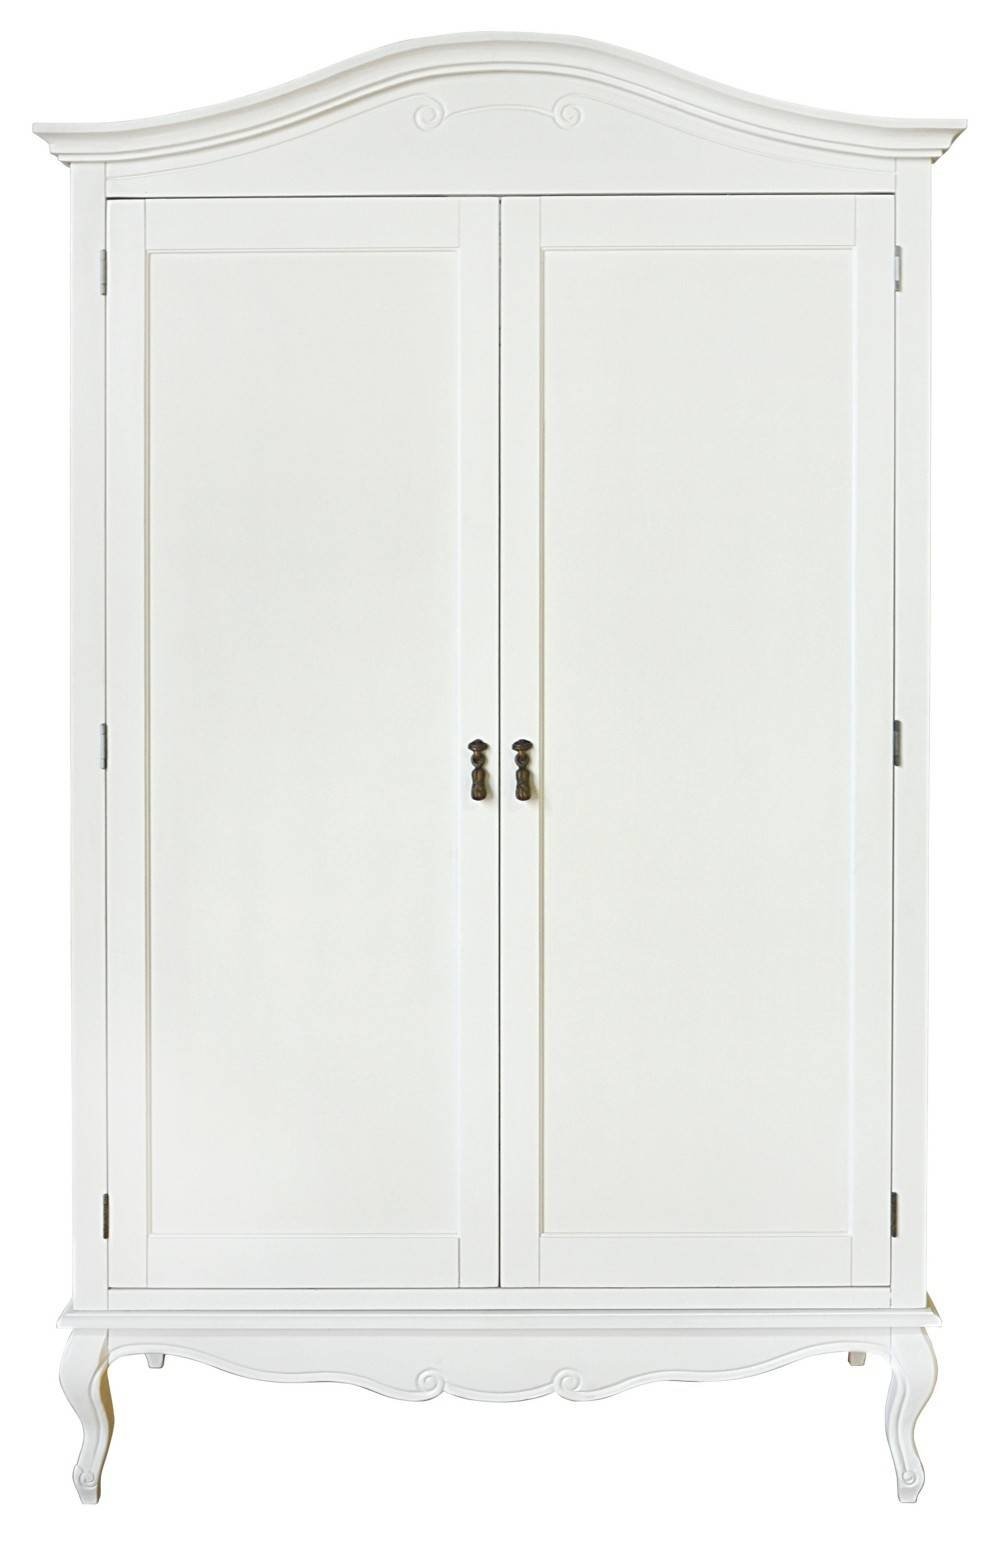 Wardrobes | Bedroom Furniture Direct Throughout Double Hanging Rail Wardrobes (View 12 of 30)